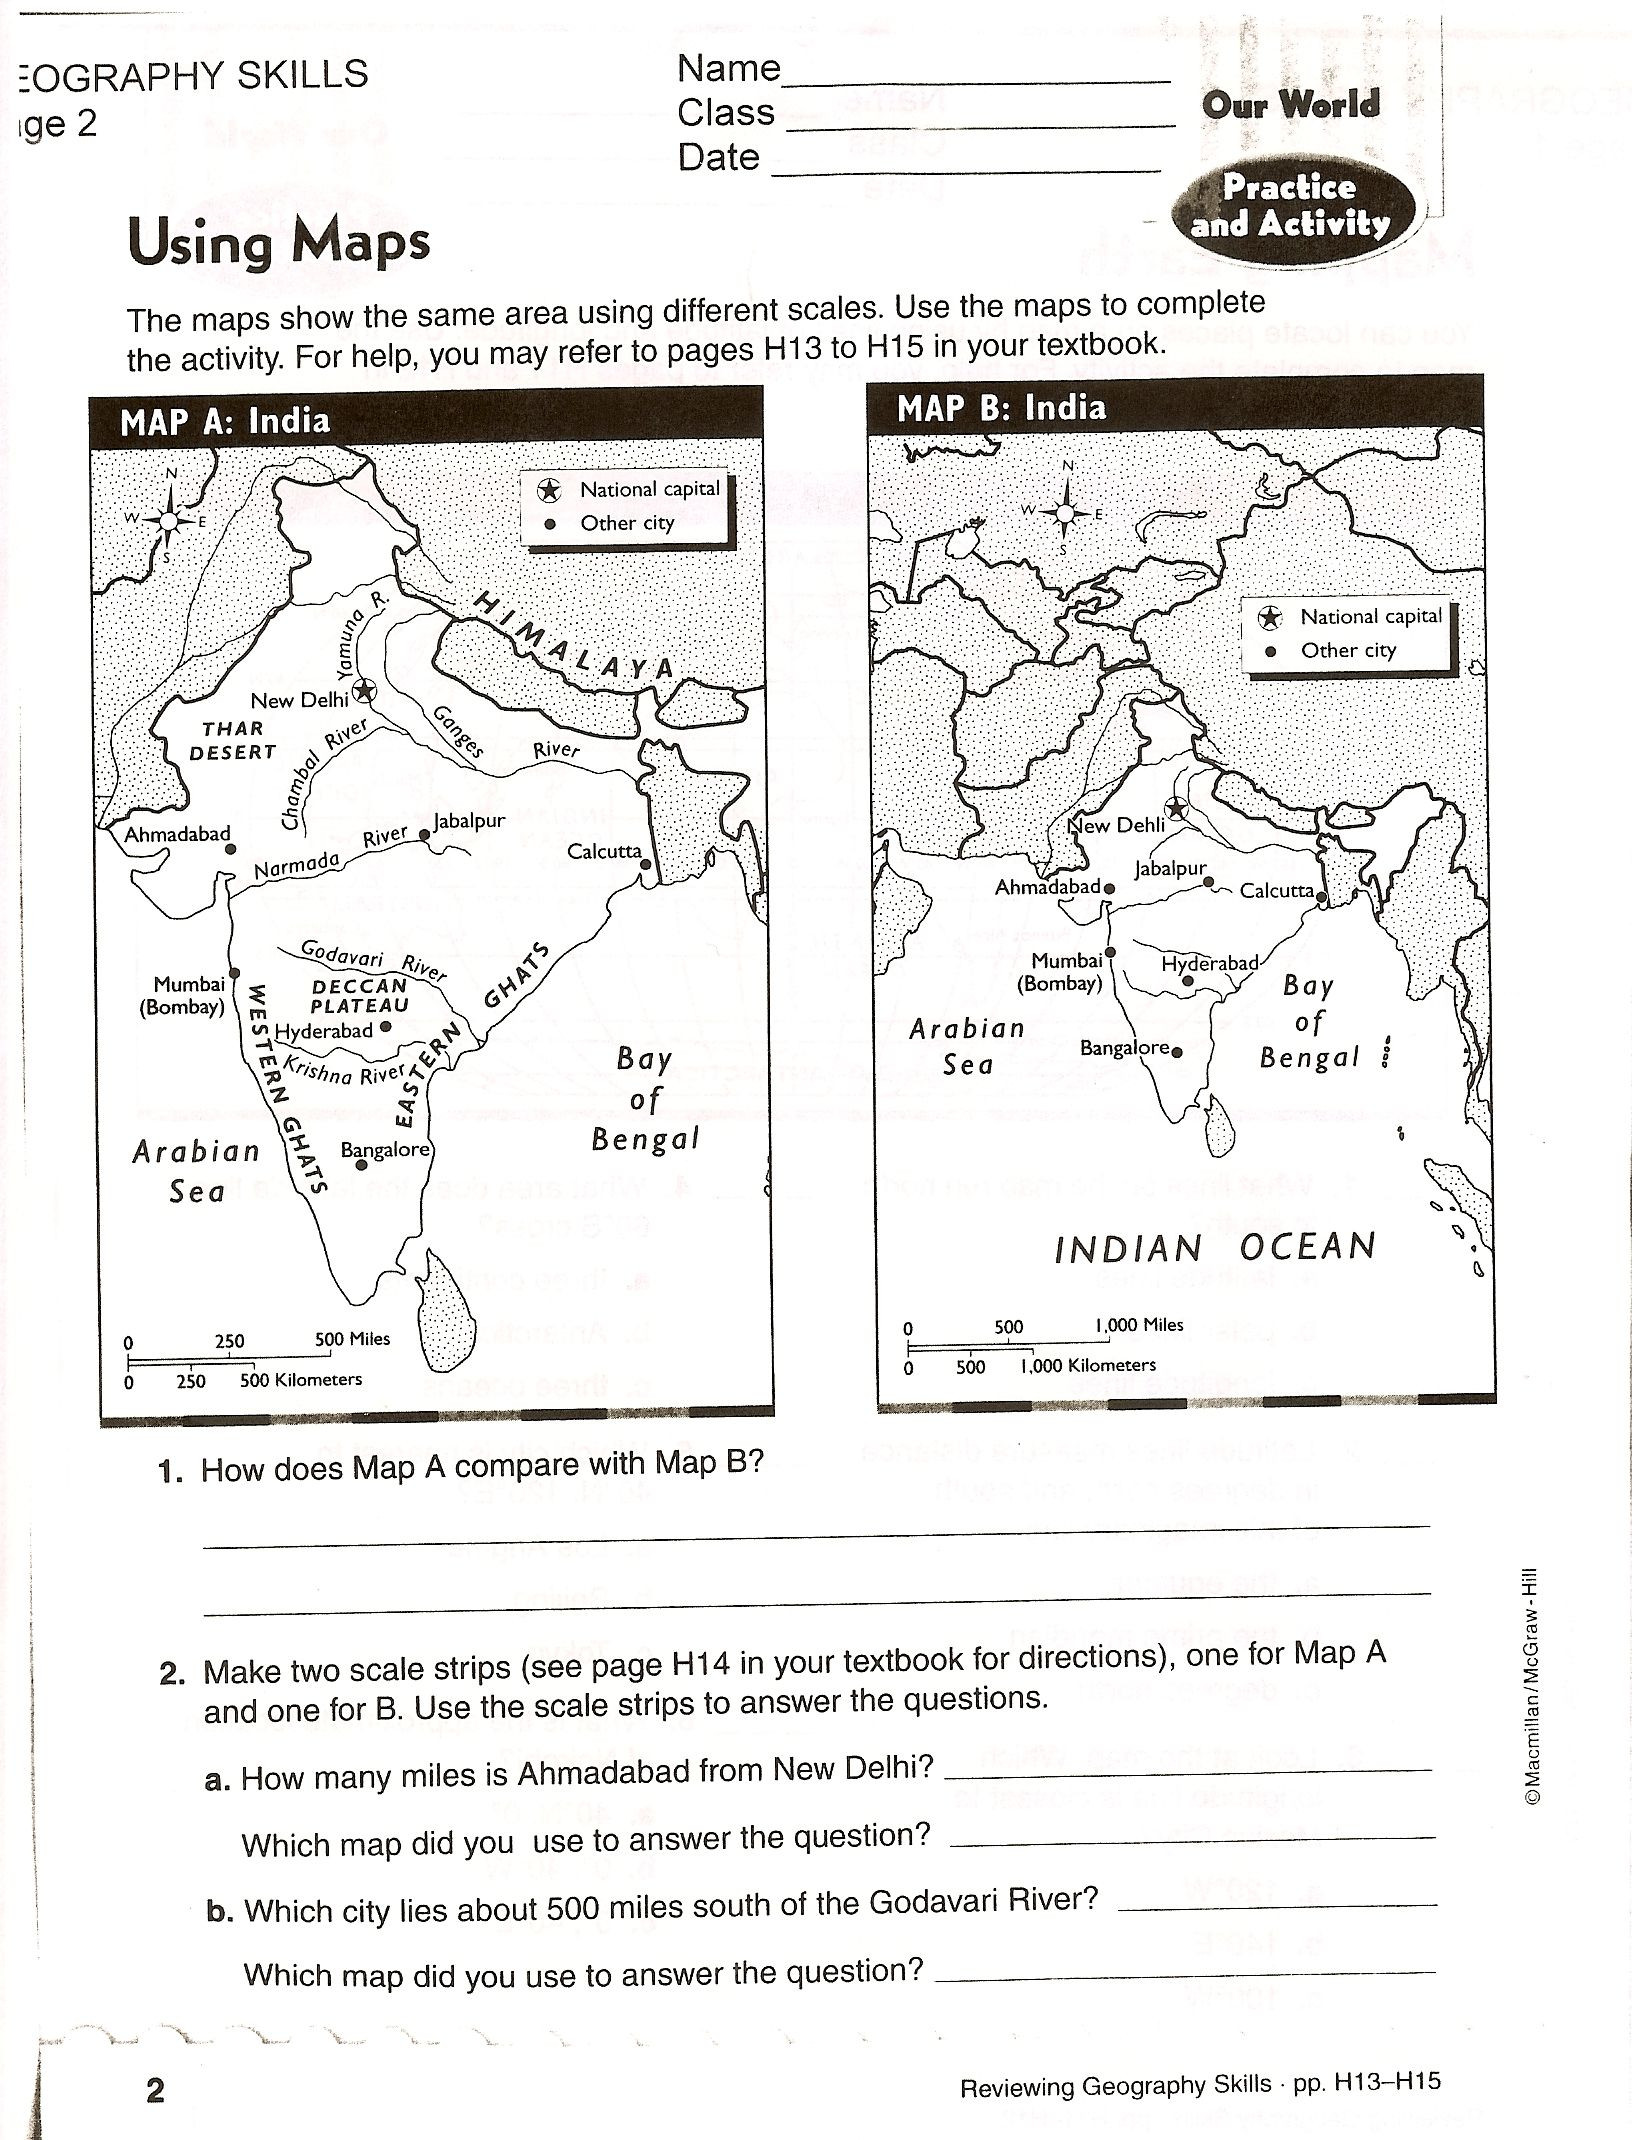 Maps Worksheets 2nd Grade Using Maps Handout Copy 1 632—2 140 Pixels with Images